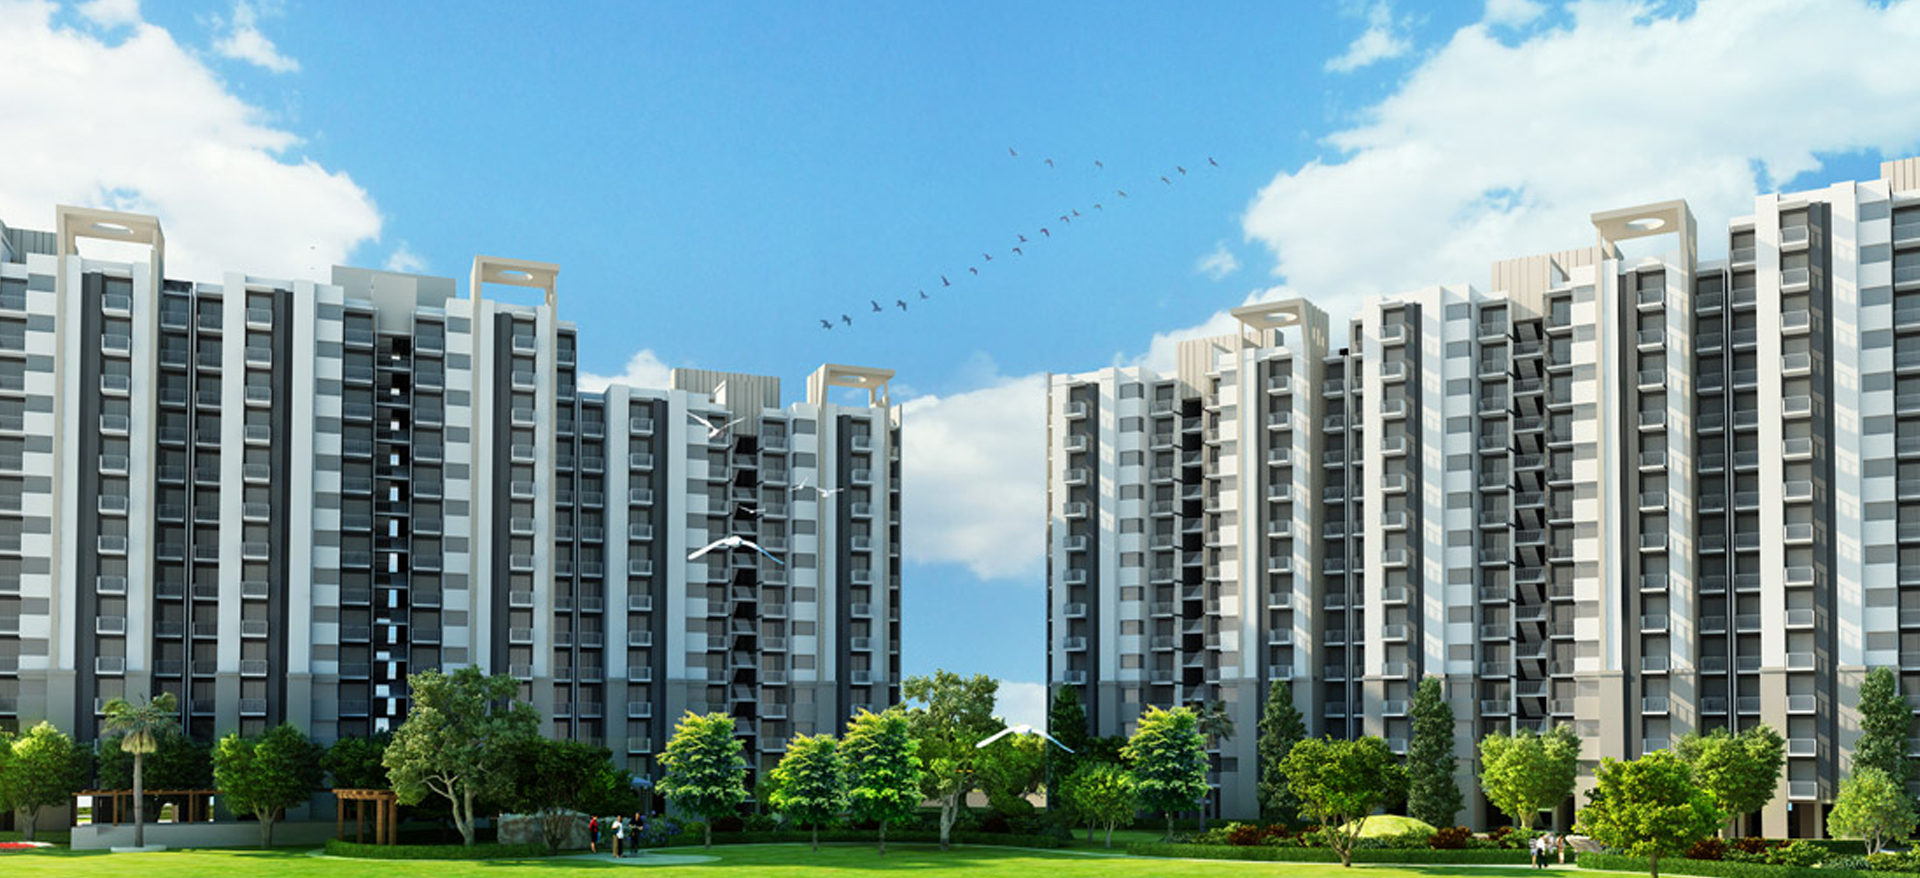 Sector 108 Group Housing Development, Delhi, India